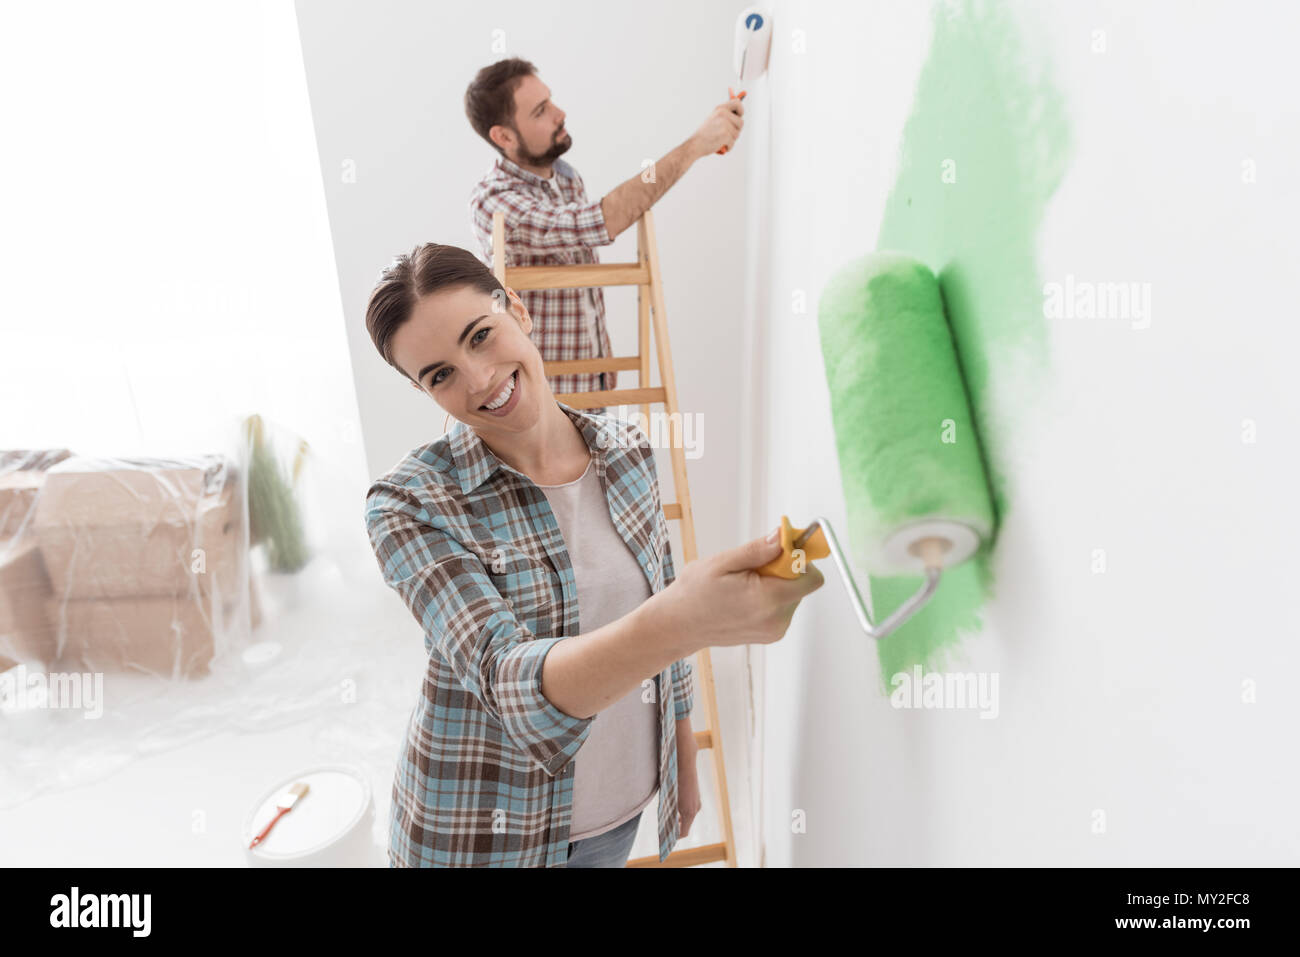 Happy couple painting walls in their new house: the man is standing on a ladder and the woman is using a paint roller and applying bright green paint - Stock Image